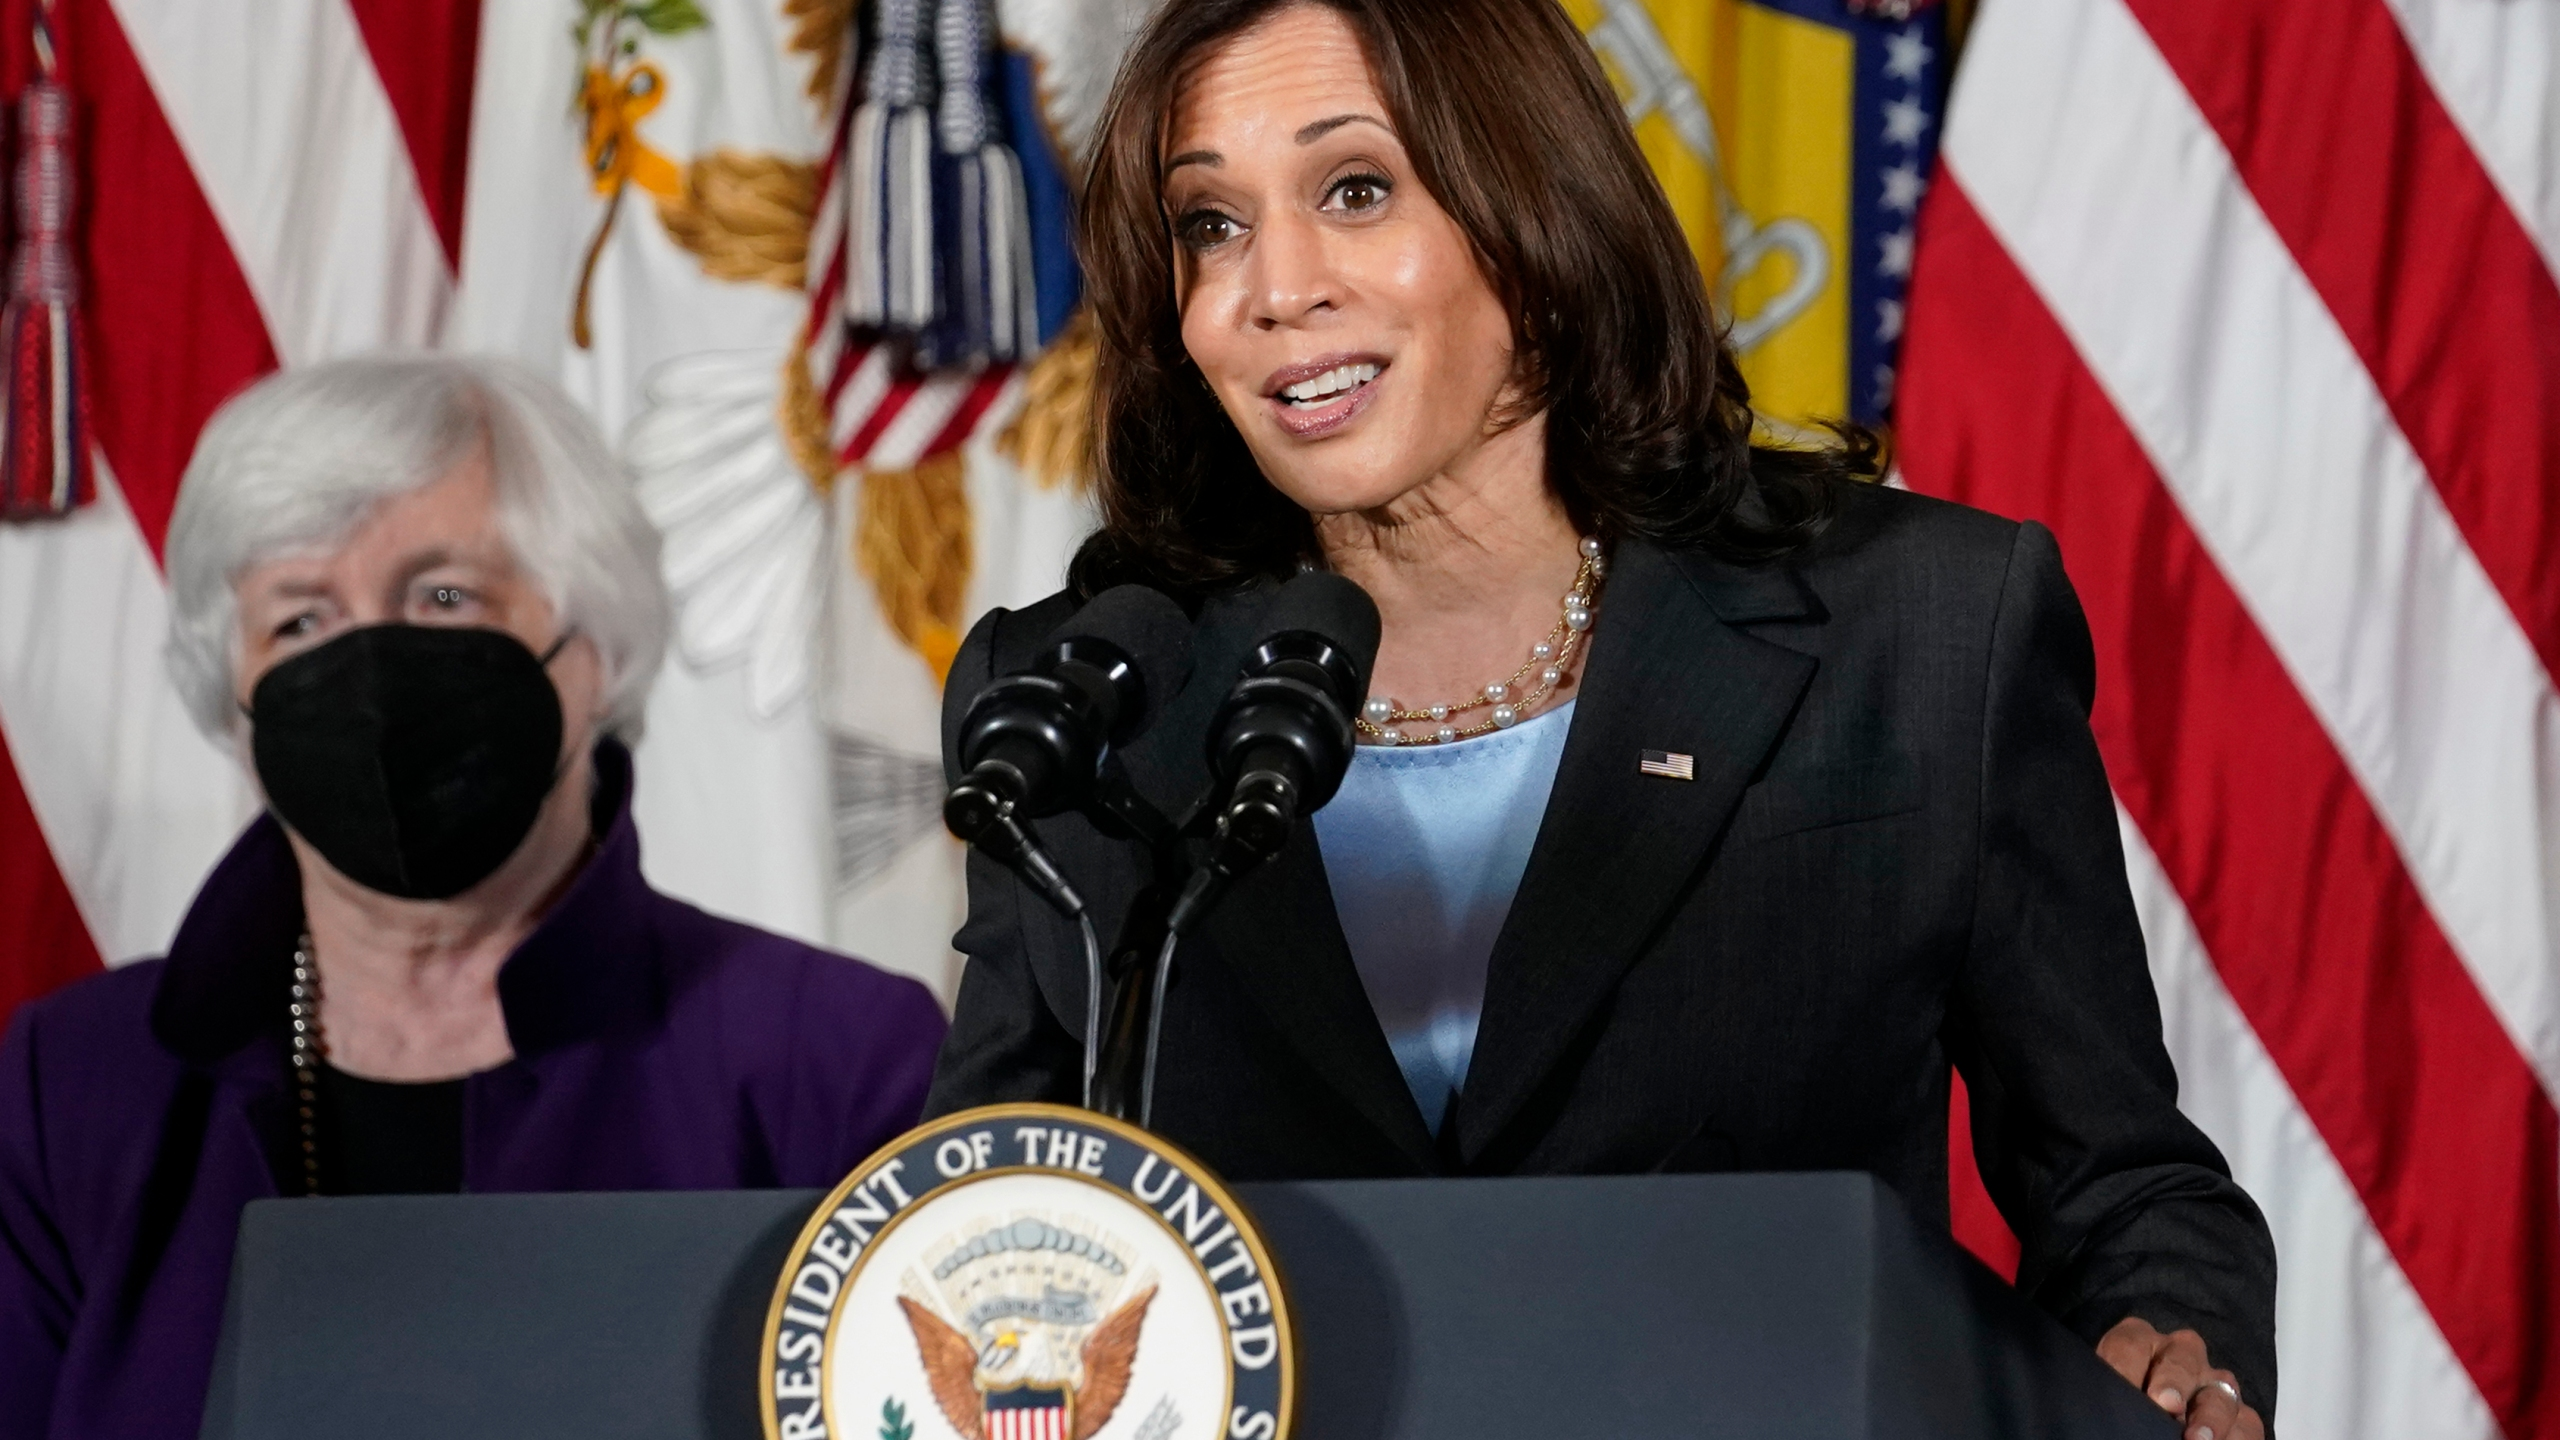 """Vice President Kamala Harris, right, speaks as Treasury Secretary Janet Yellen listens during an event at the Treasury Department in Washington on Sept. 15, 2021. Harris will appear on the daytime talk series """"The View"""" on Friday. (AP Photo/Susan Walsh, File)"""